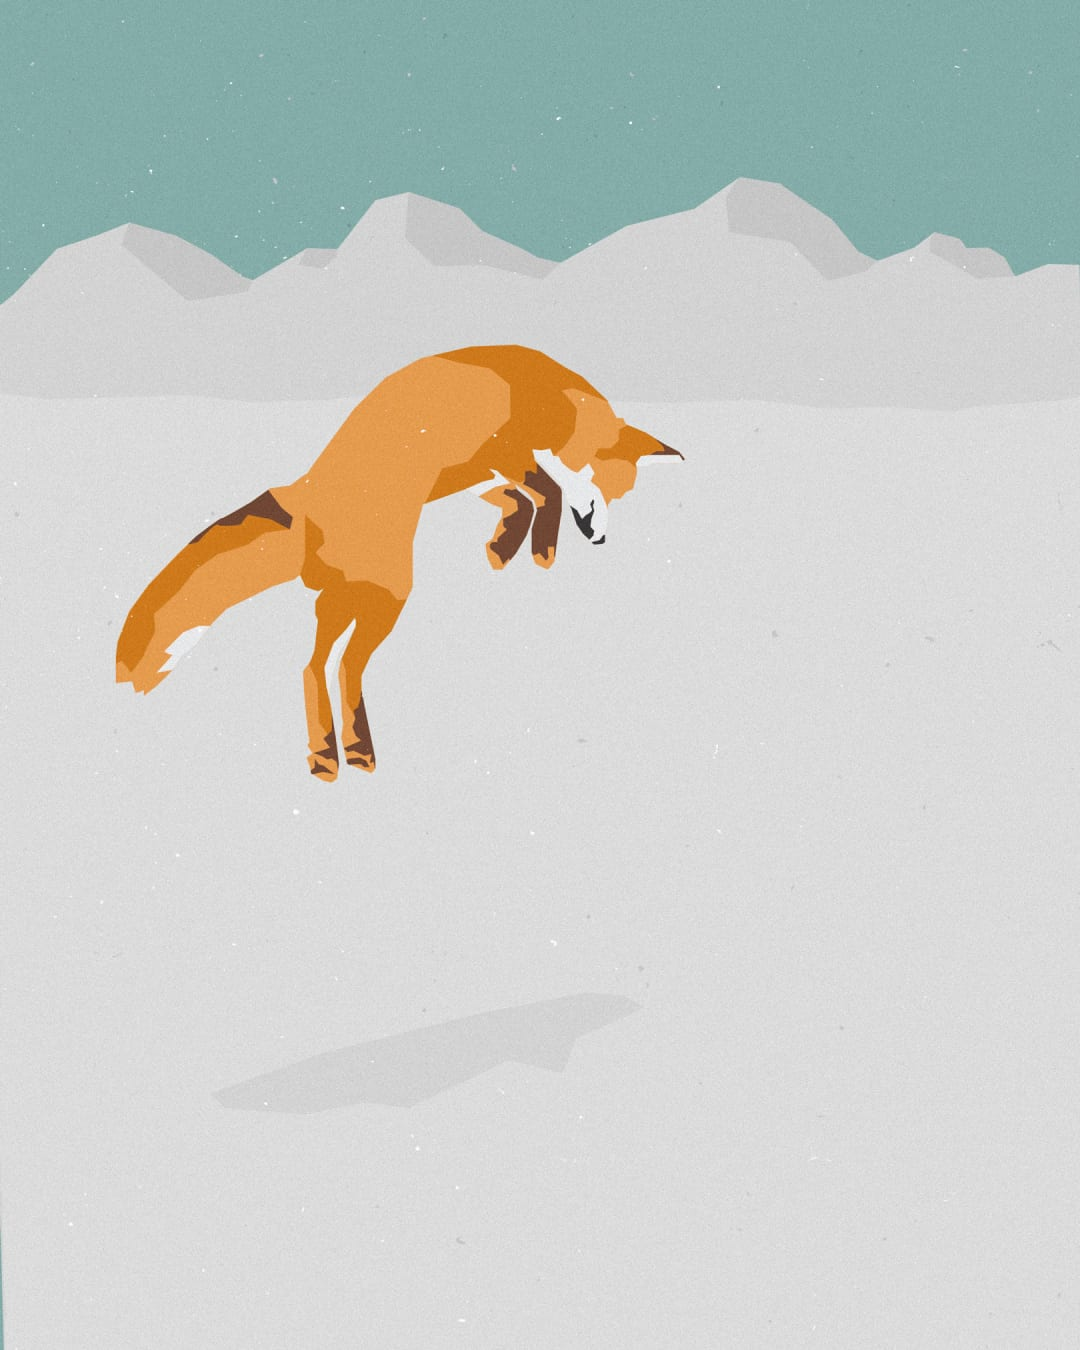 An illustration of a North American fox hunting in the snow by diving head first to catch its prey